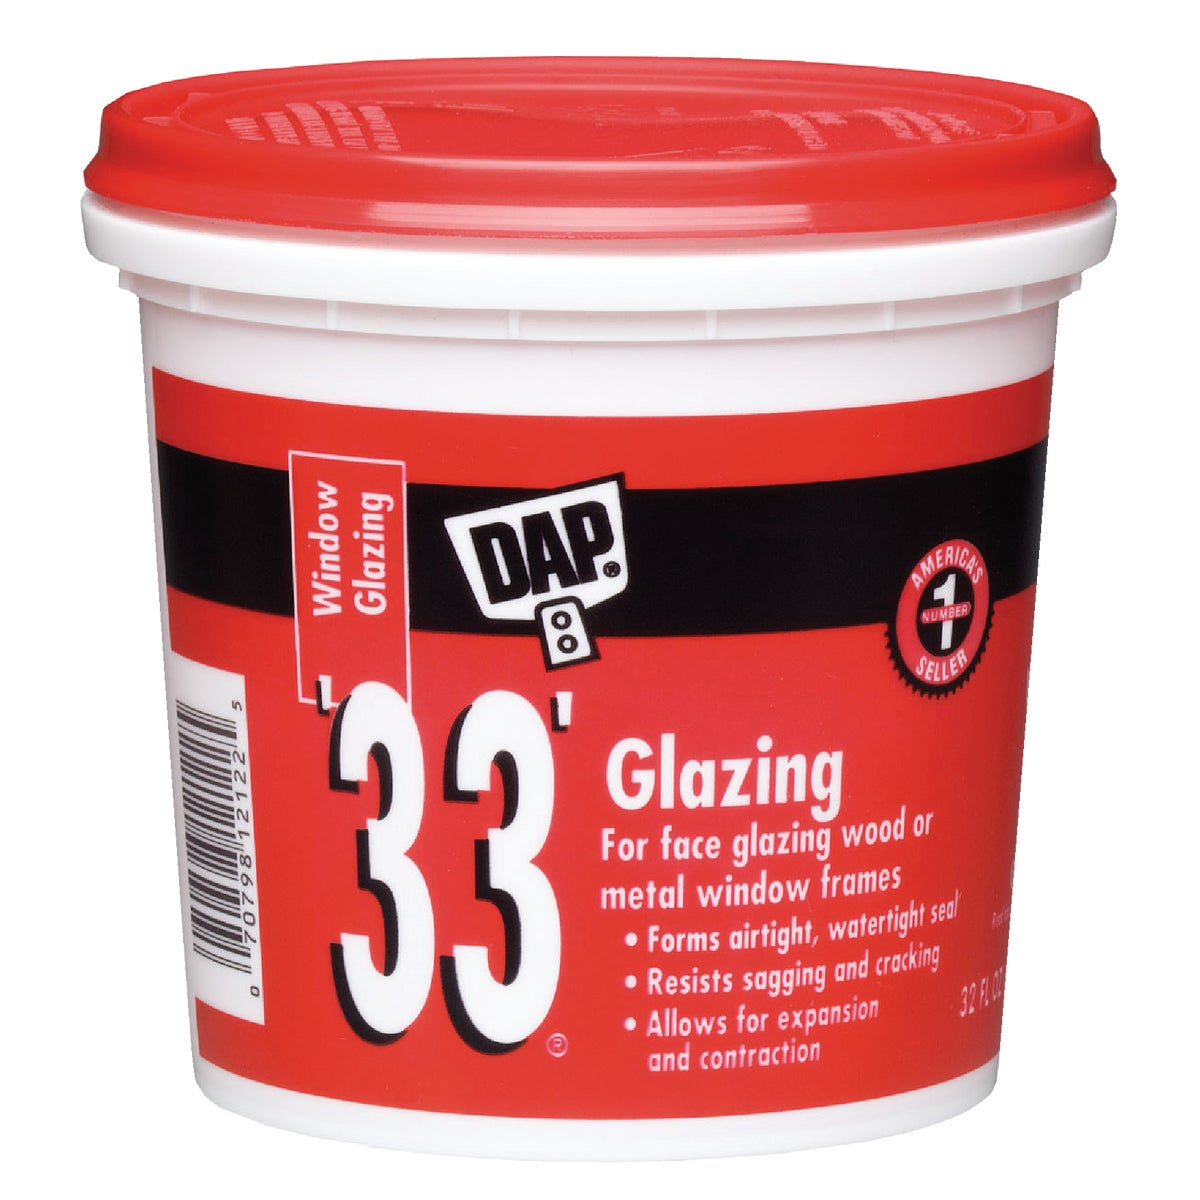 QT WHT GLAZING COMPOUND - 12122 by Dap Inc